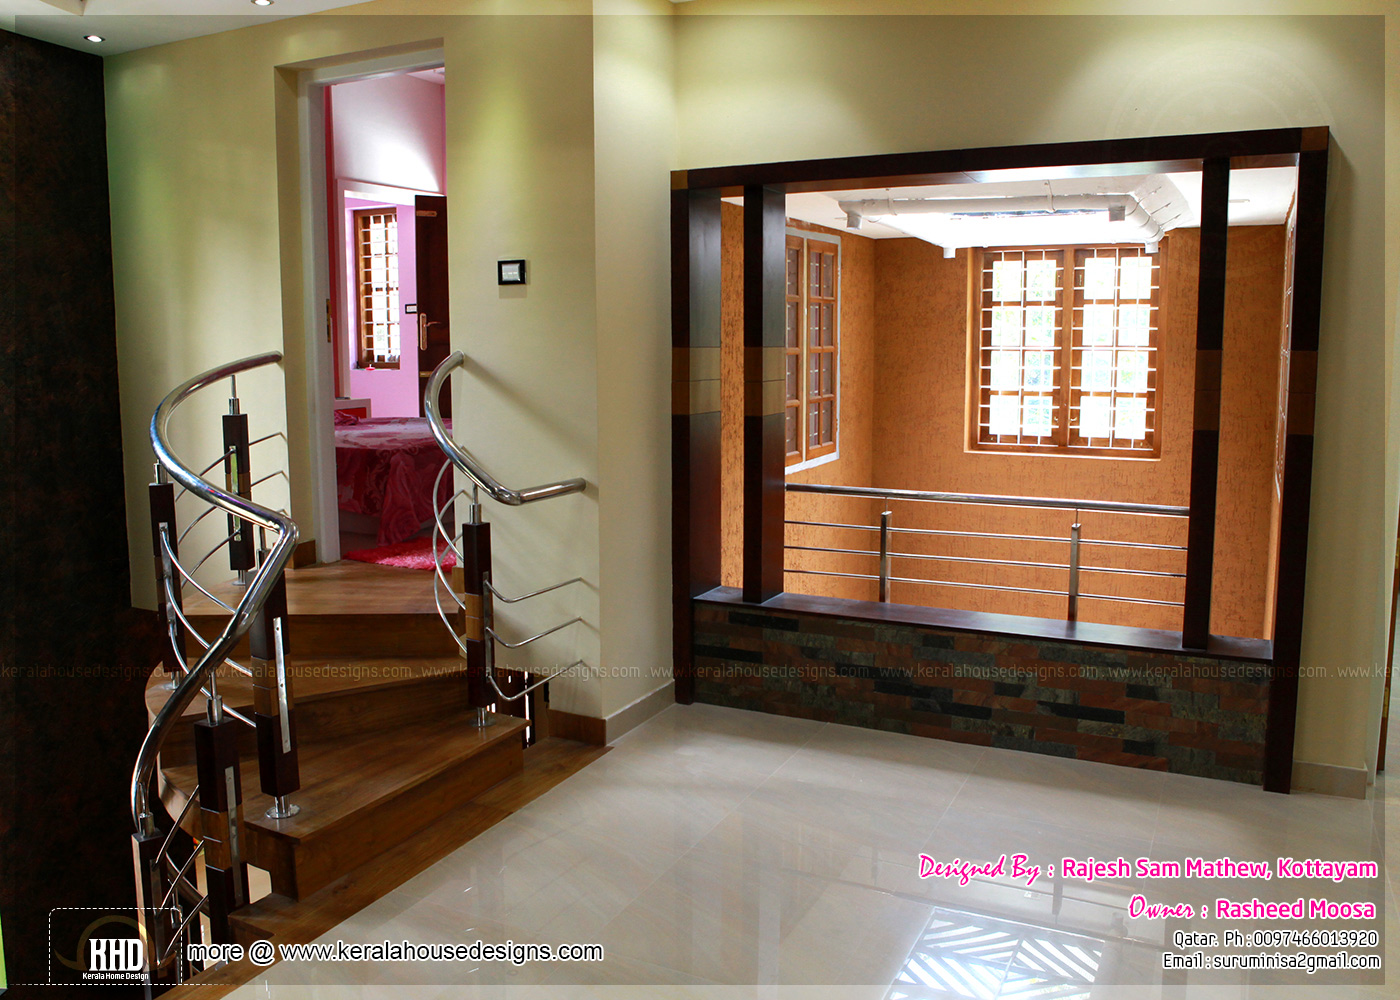 Kerala interior design with photos kerala home design for Beautiful interior designs for small houses